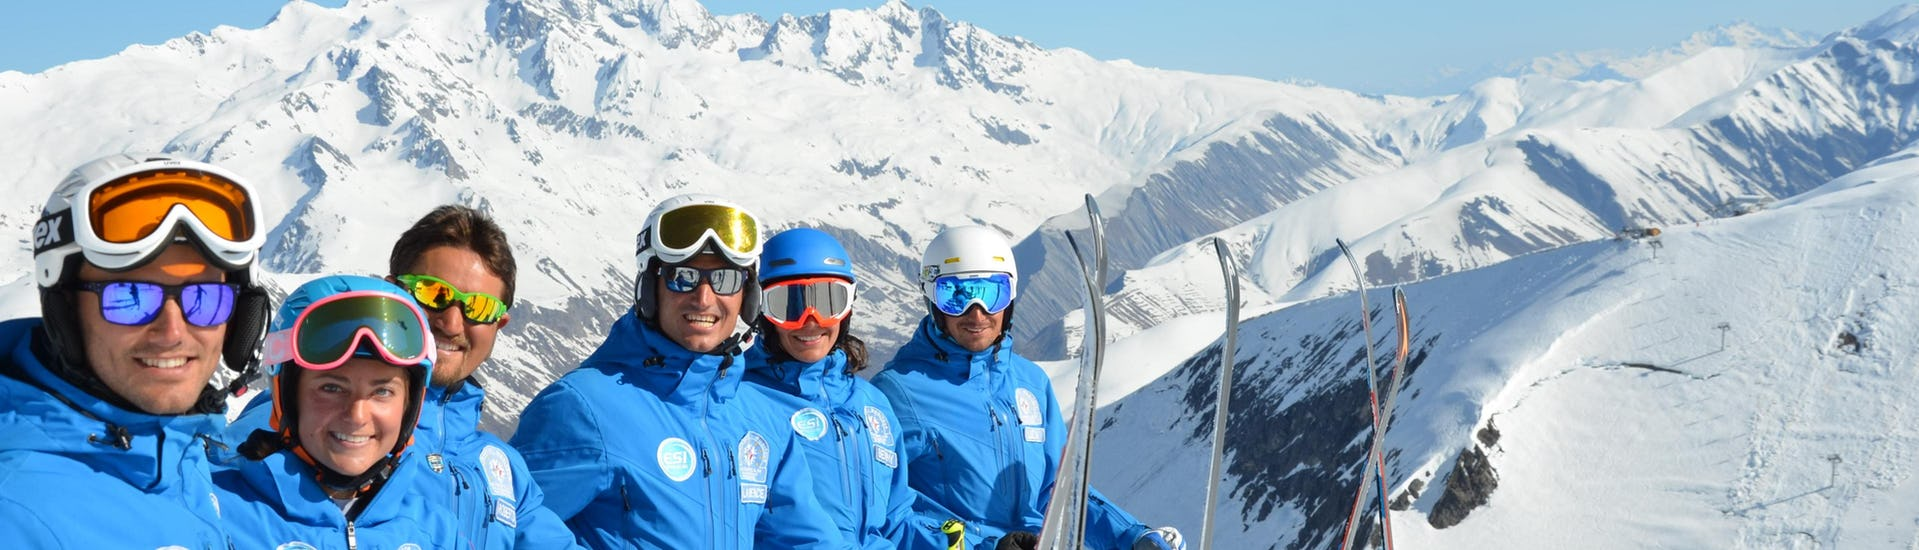 Ski Lessons for Teens & Adults - Morning